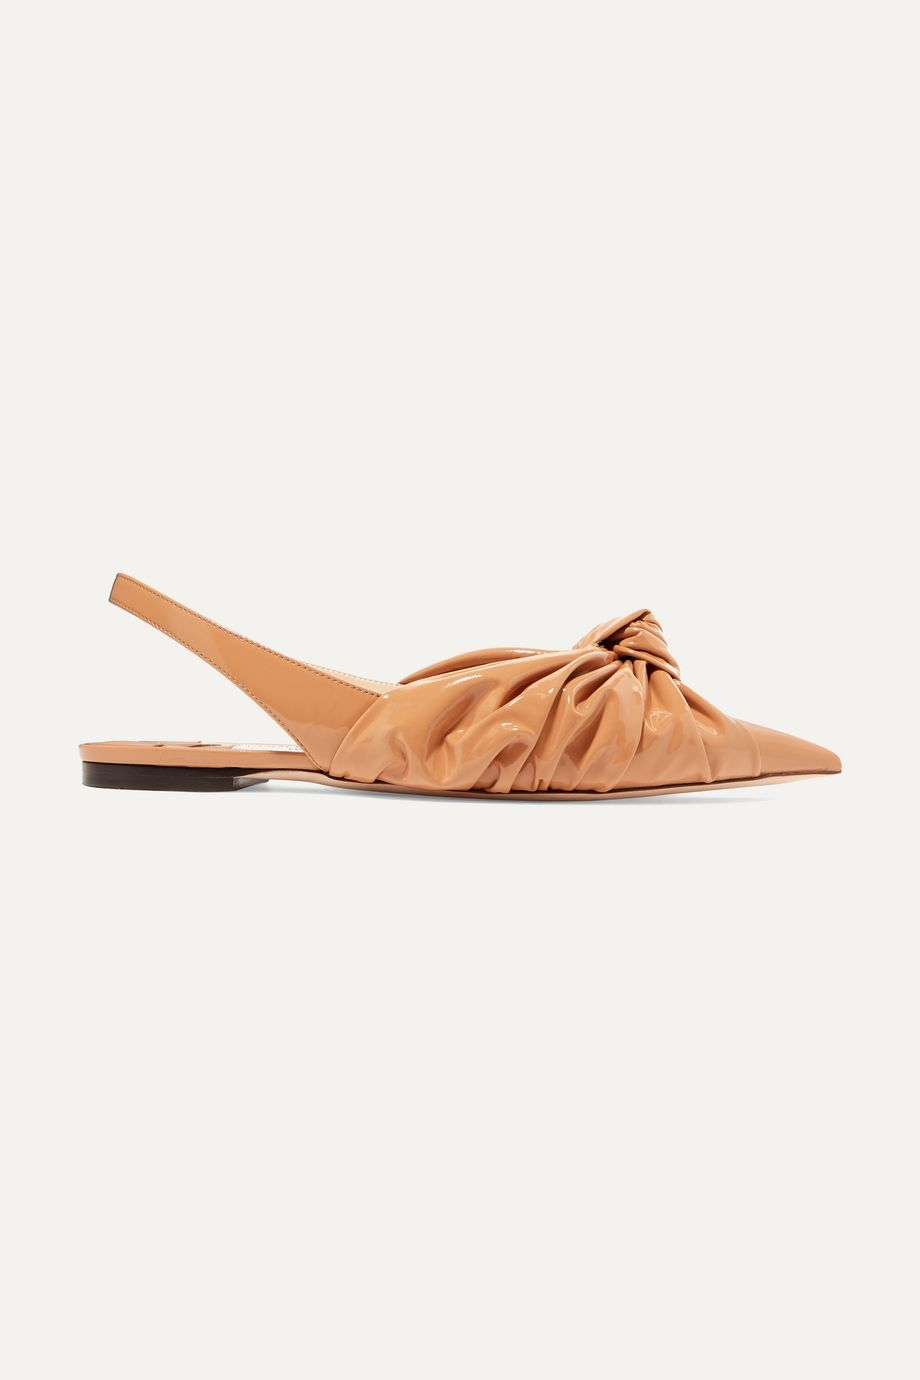 Jimmy Choo Annabel knotted patent-leather slingback point-toe flats